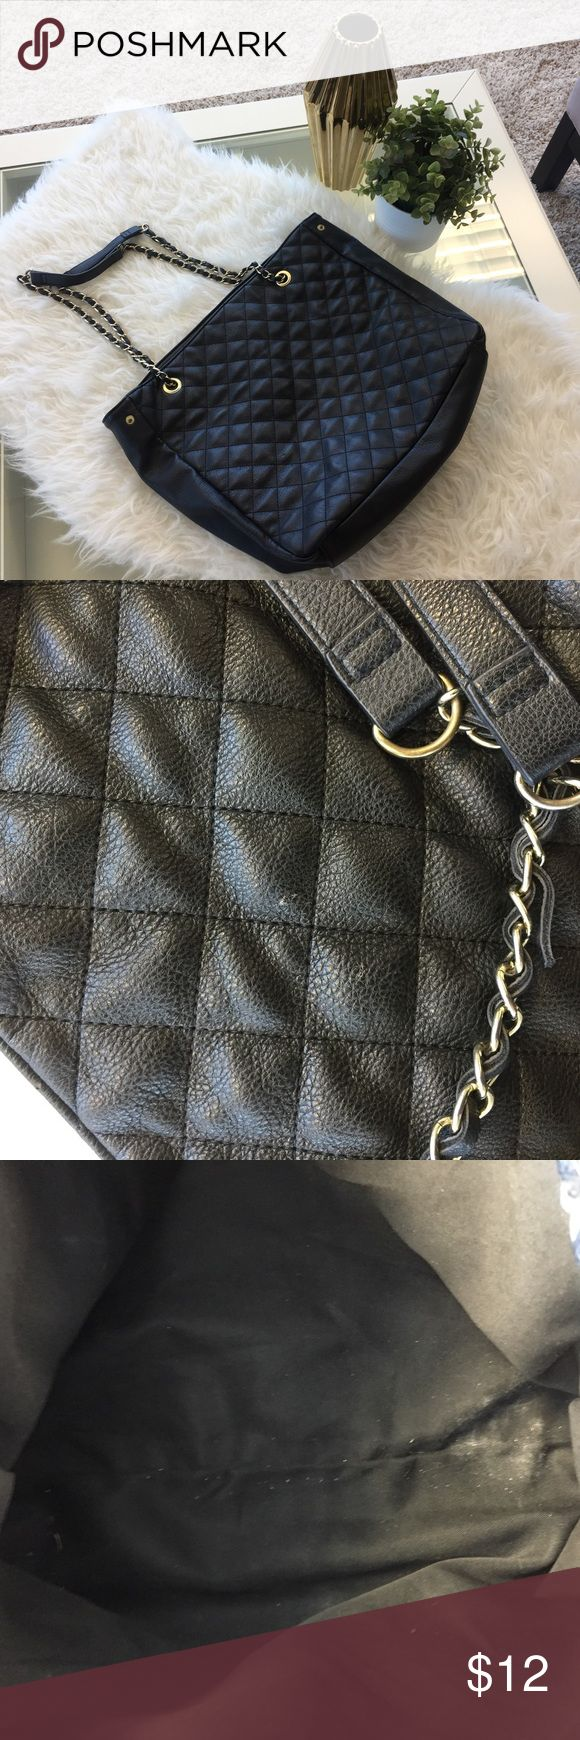 Large Black Tote Large black tote bag with black and gold chain straps. Perfect for putting your laptop in, makeup bag, or stuffing some clothes in there for a night away from home! Please see pics of light wear, but very good condition. Forever 21 Bags Totes